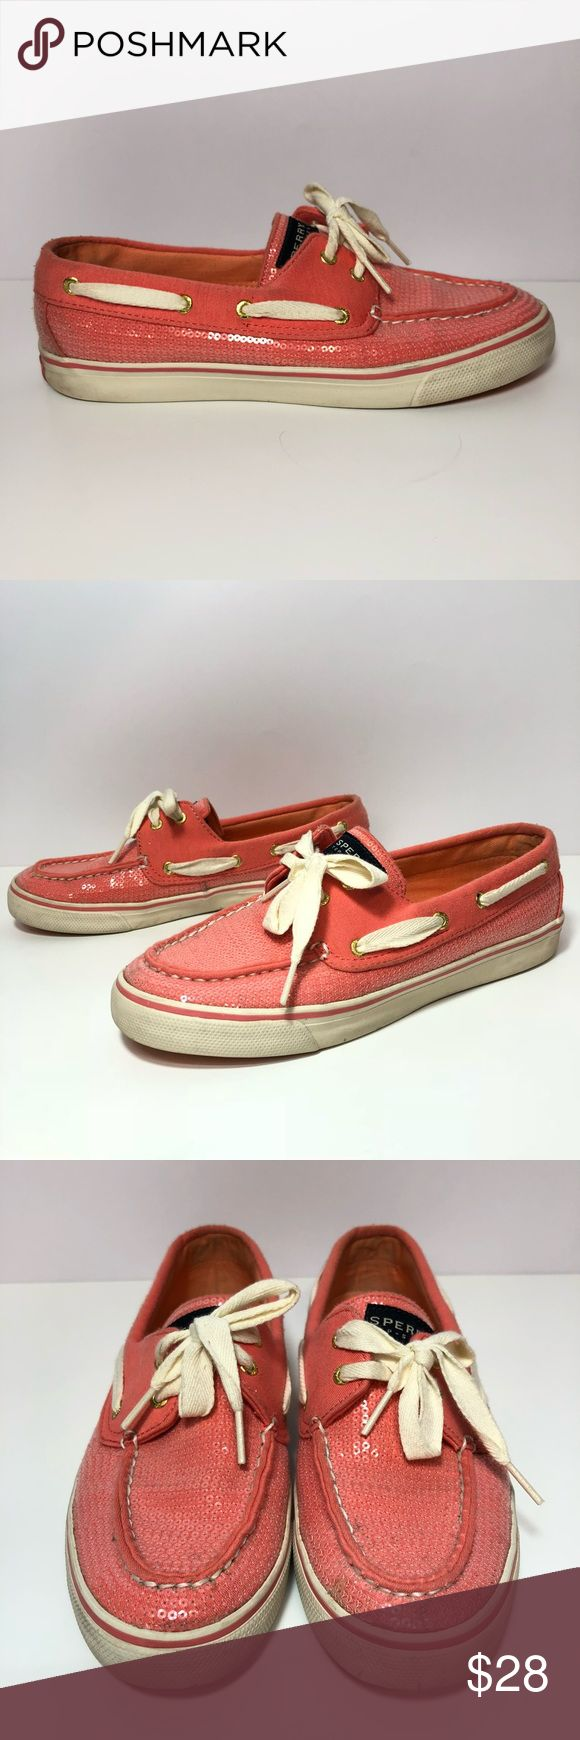 Sperry Top Sider Pink Sequin Boat Slip On Shoes Posh Thrift Shop  Thanks for stopping by!!!  Item: SPERRY TOP-SIDER WOMEN'S AUTHENTIC ORIGINAL GLITTER BOATSHOES PINK SIZE 8 M   Condition: In good used condition  Please refer to images for more details about this item. If you have any questions please feel free to ask. Sperry Top-Sider Shoes Flats & Loafers